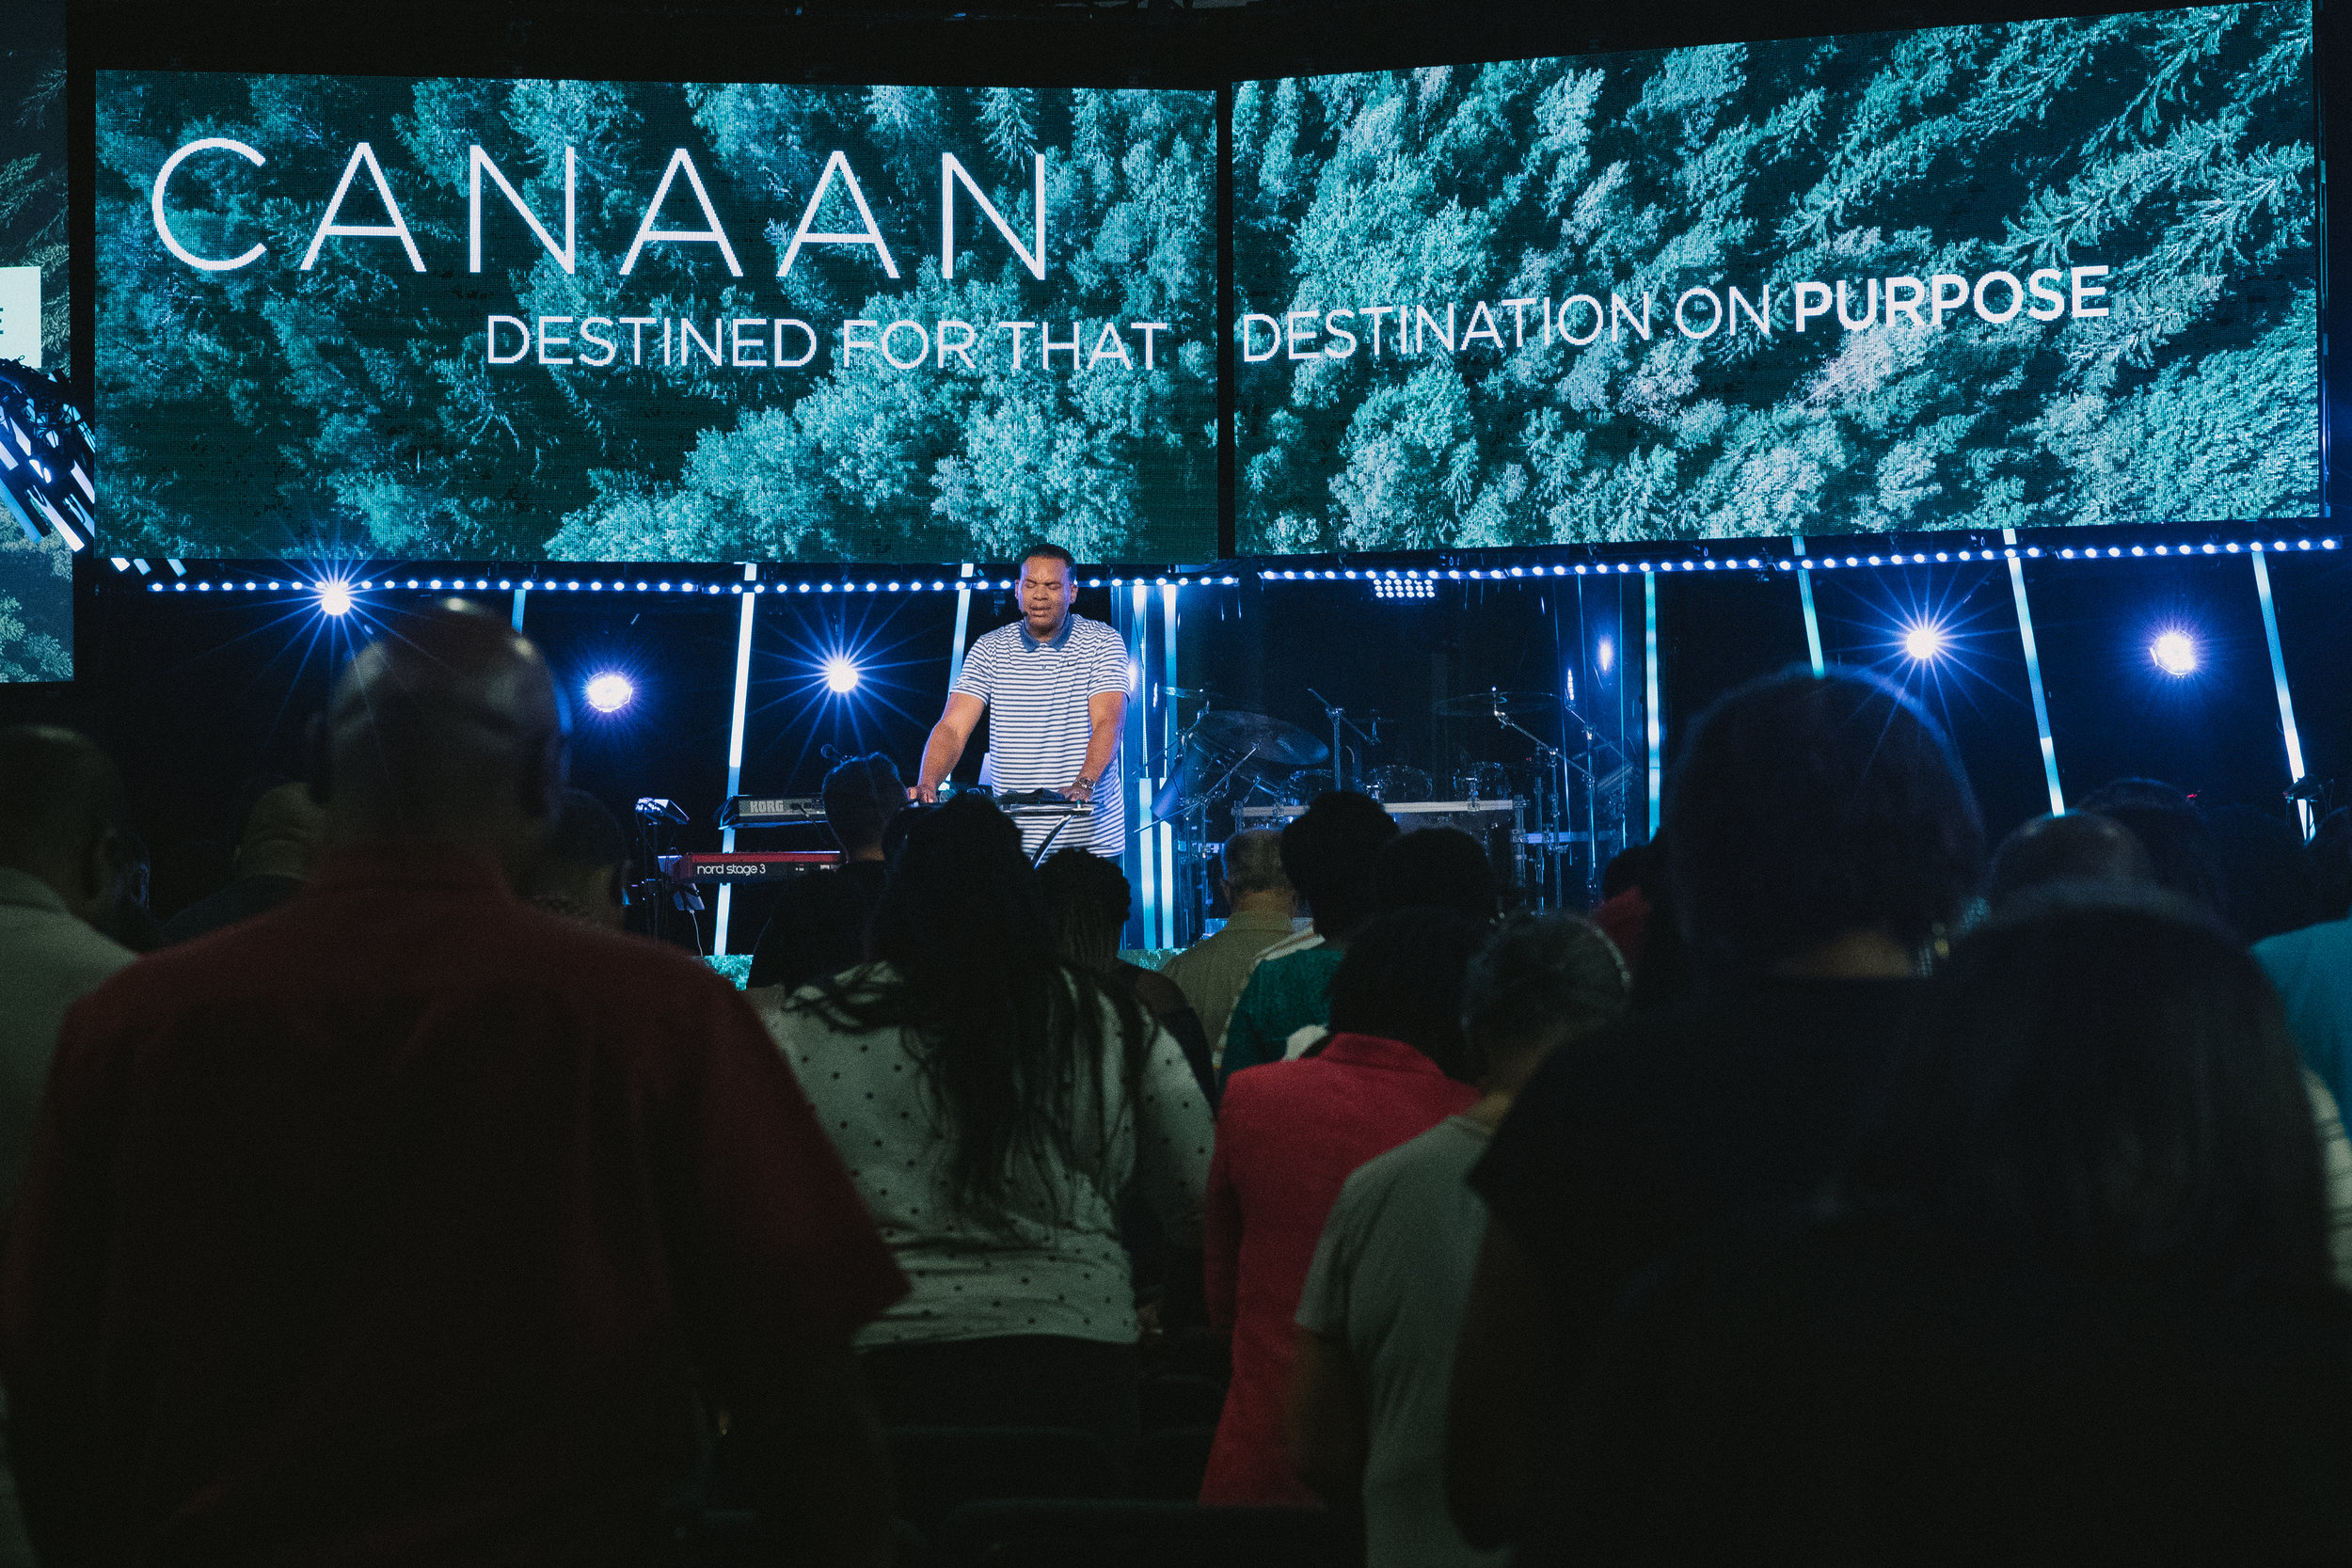 Canaan: Destined For That Destination On Purpose